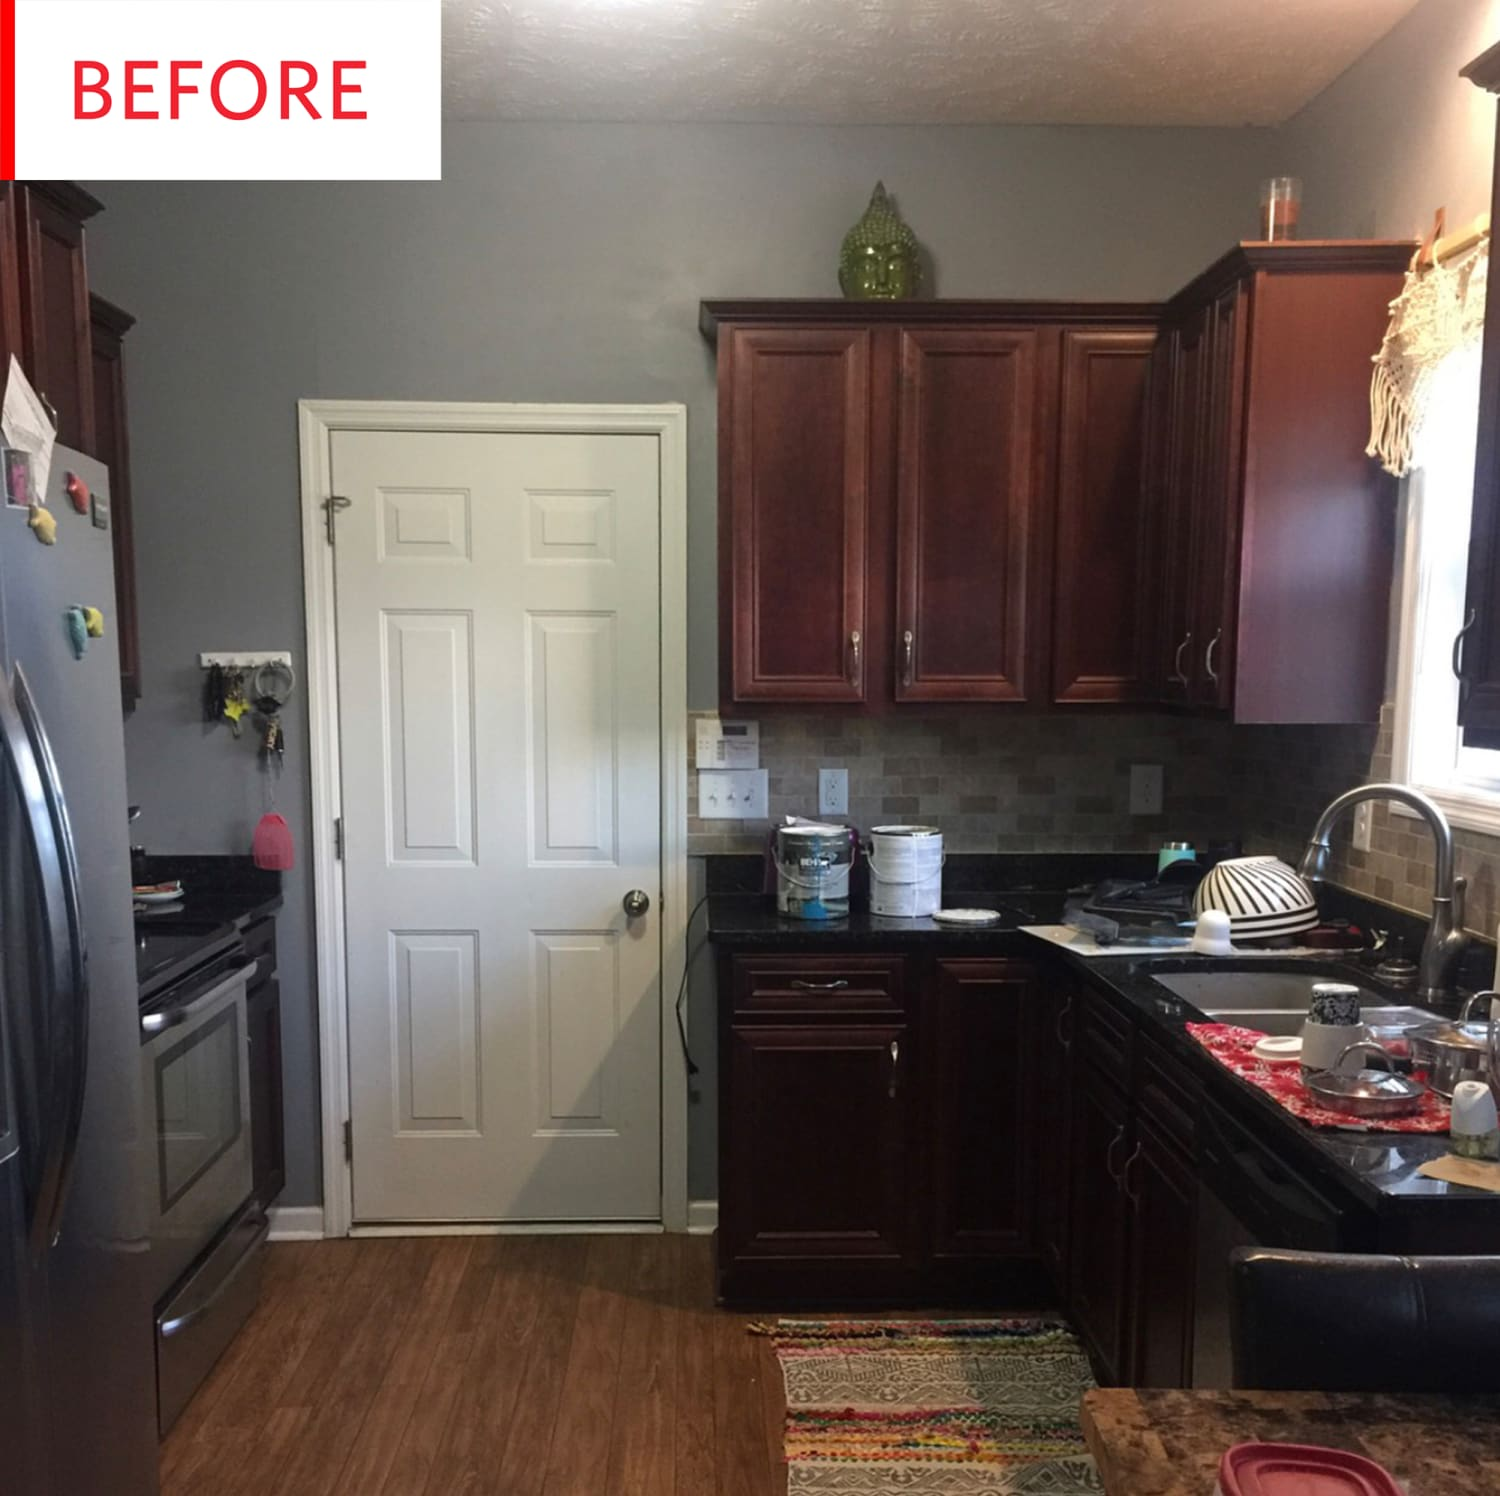 Painting Kitchen Cabinets Before Or After Changing The